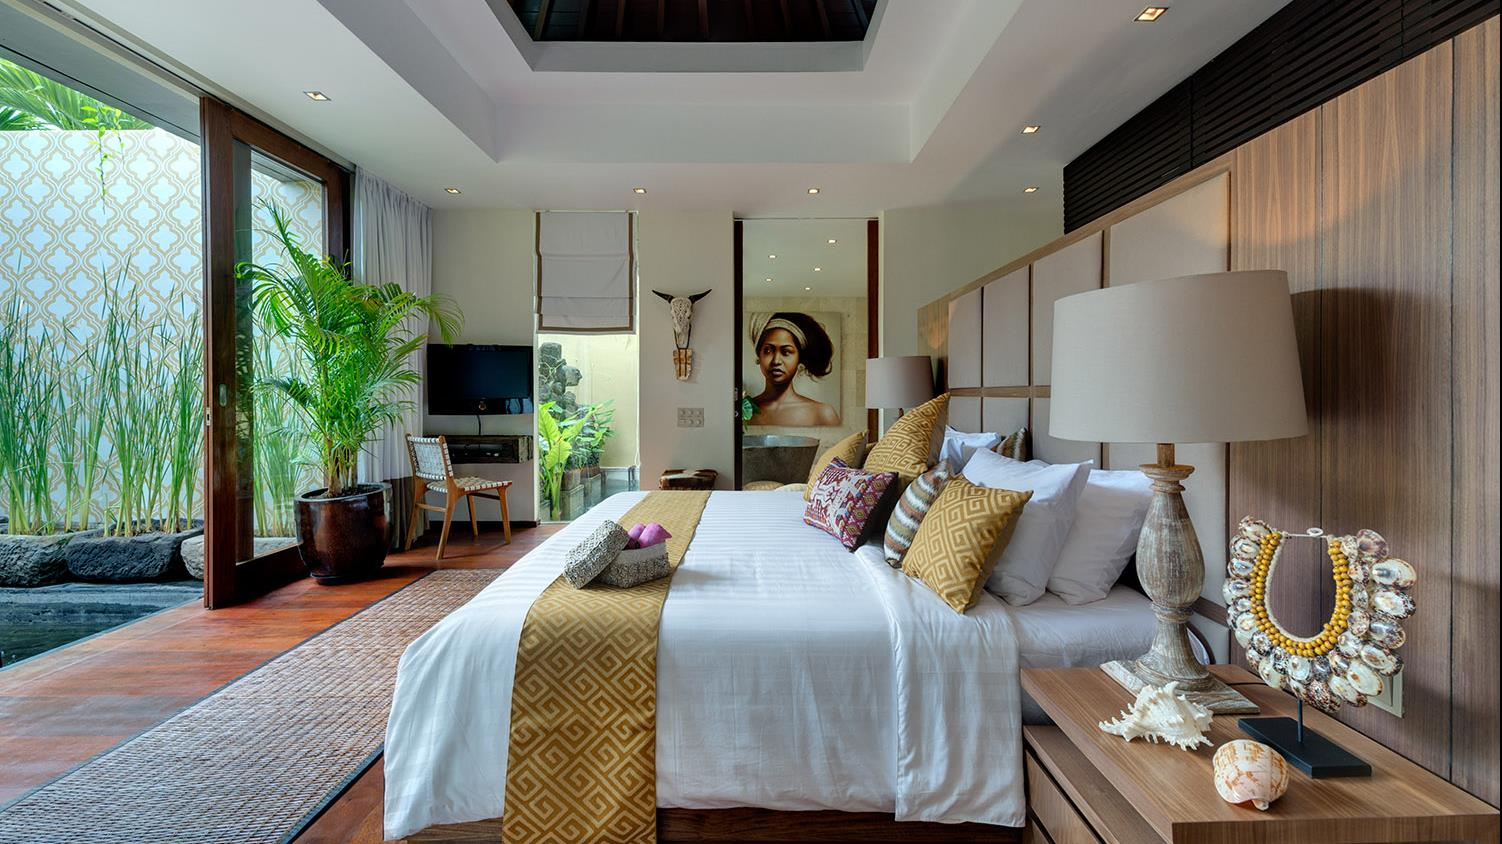 Bedroom with King size Bed - Villa Eshara - Seminyak, Bali